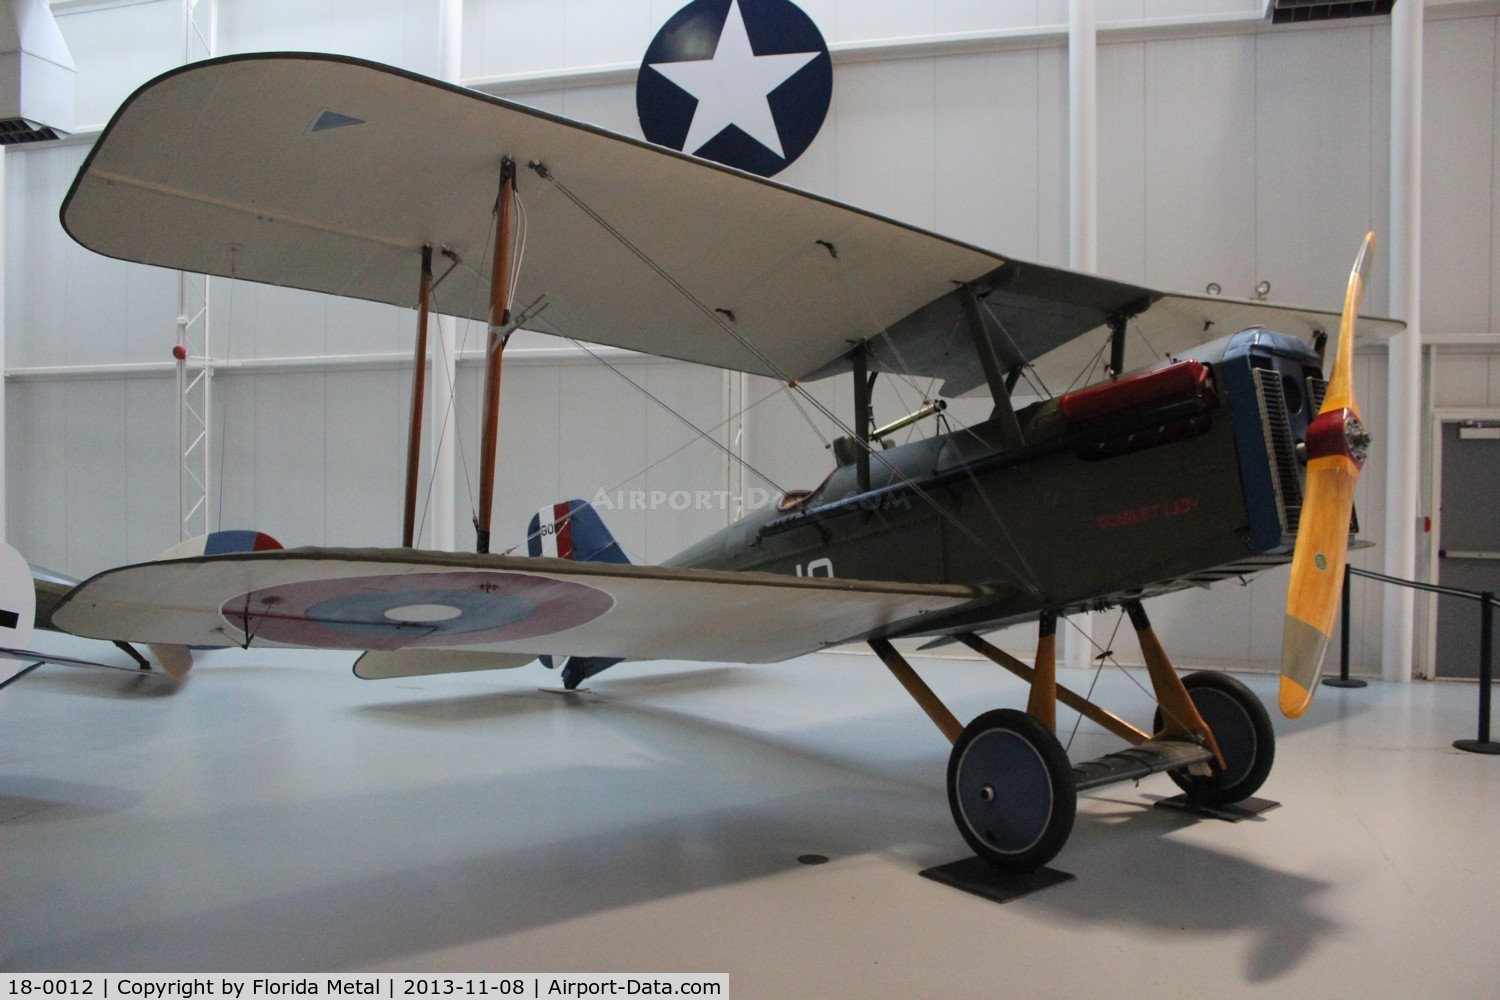 18-0012, 1918 Curtiss SE.5A C/N F8010, Curtiss S.E. 5A at Ft. Rucker Army Aviation Museum